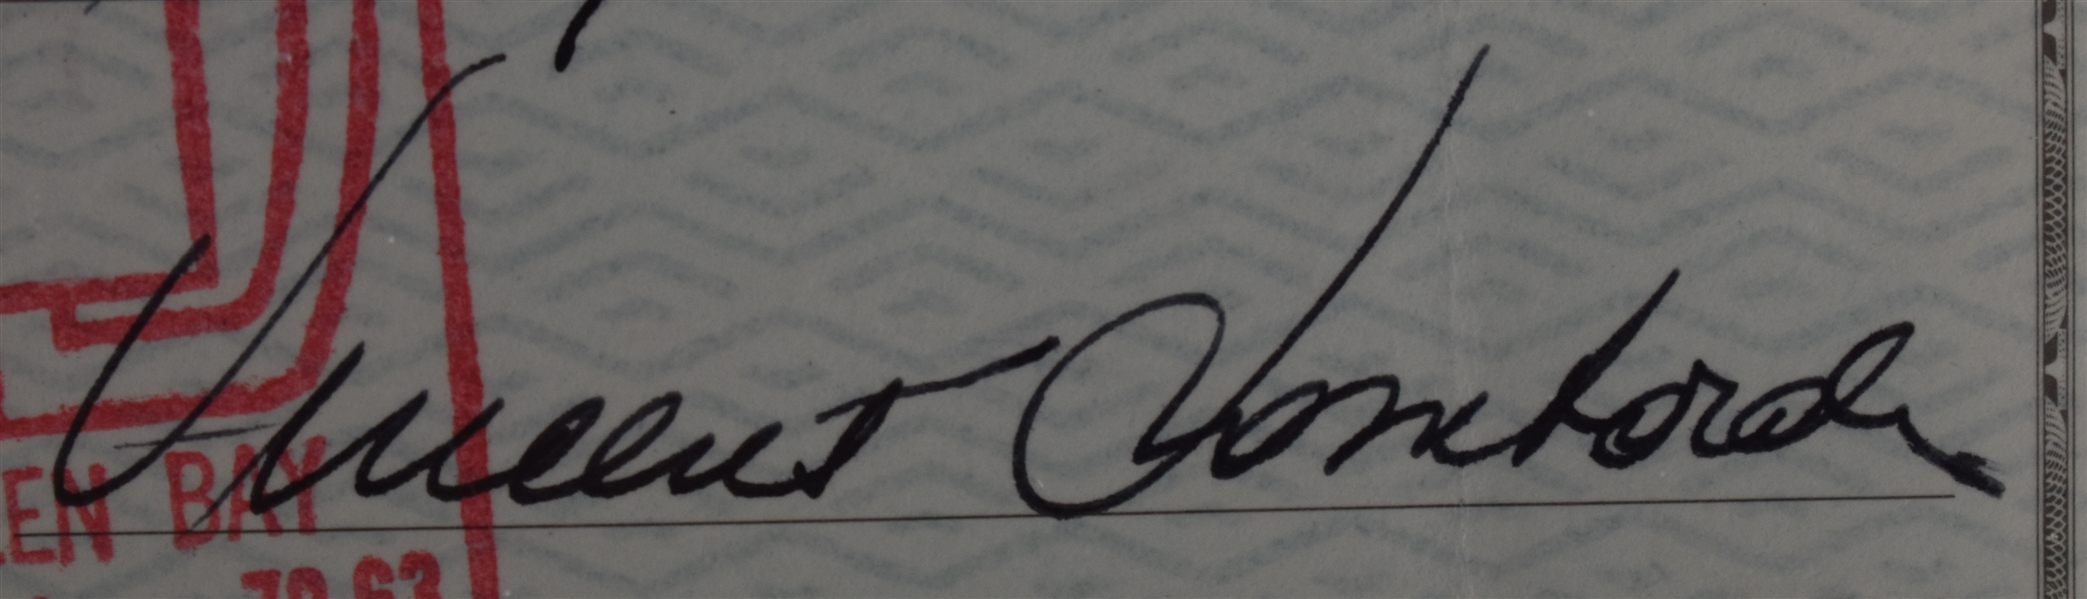 Vince Lombardi Signed 1968 Personal Check #242 BGS Authentic